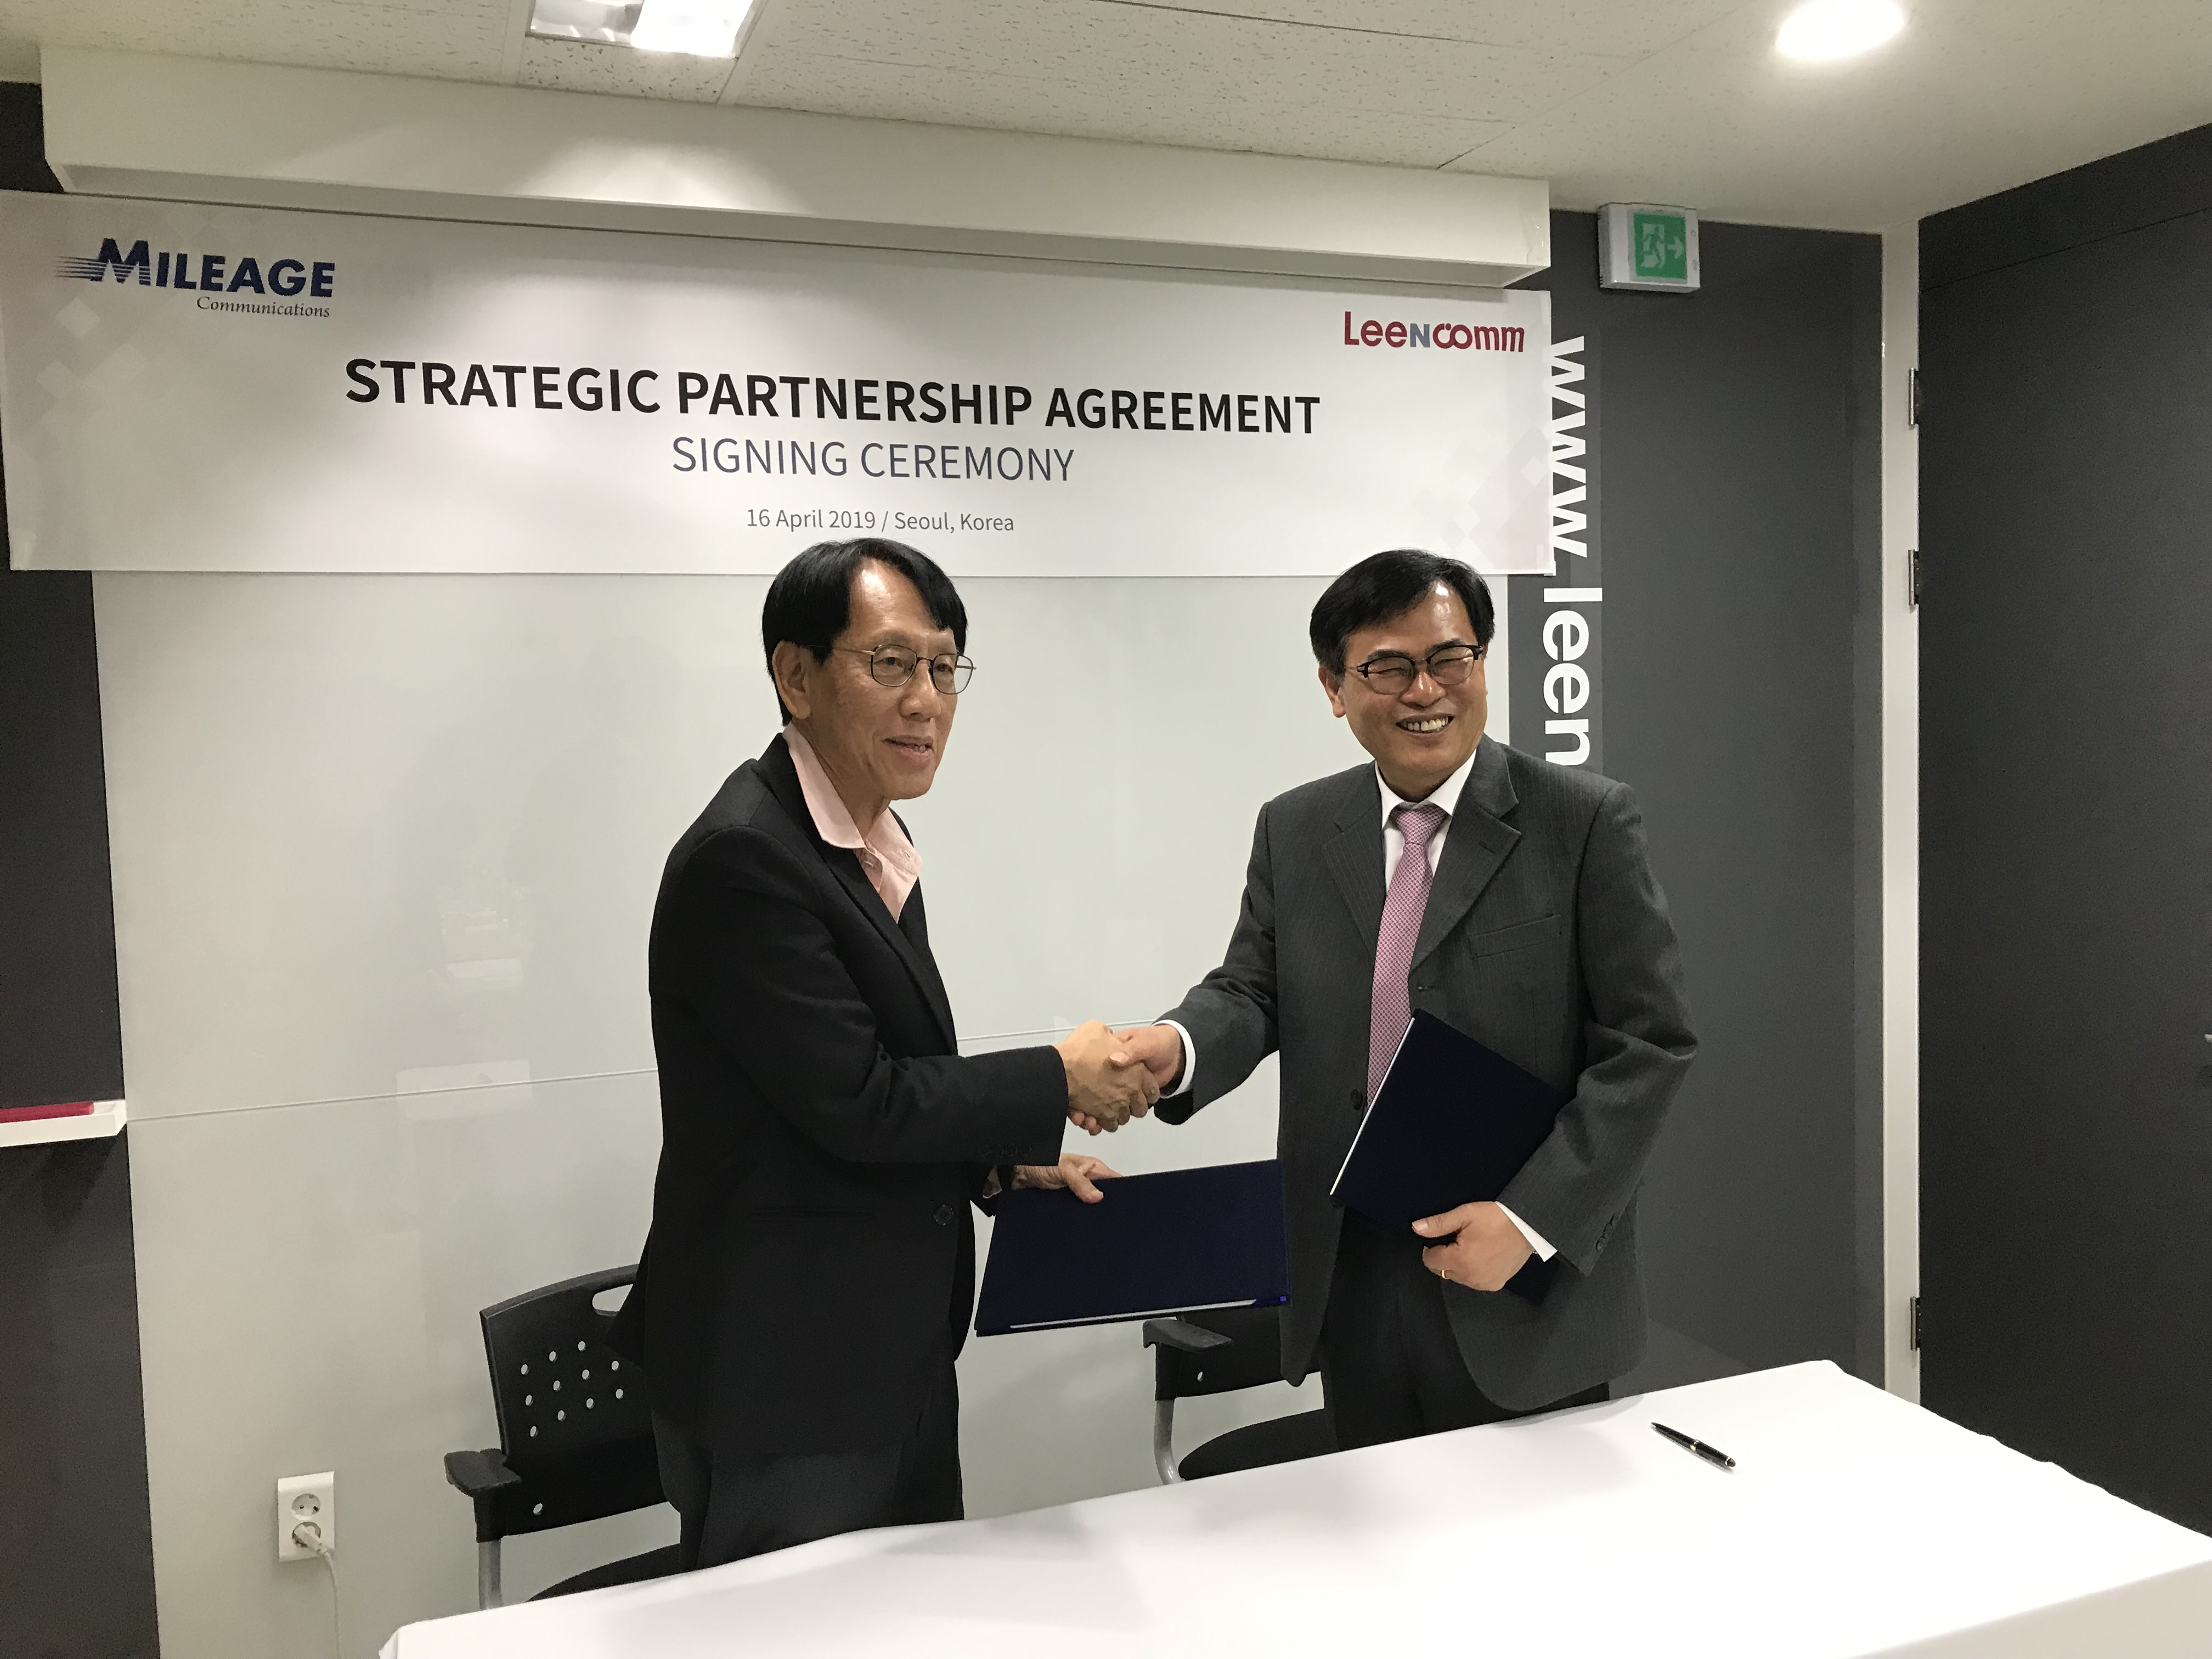 Mileage Communications signed strategic partnership with LeeNcomm in Korea